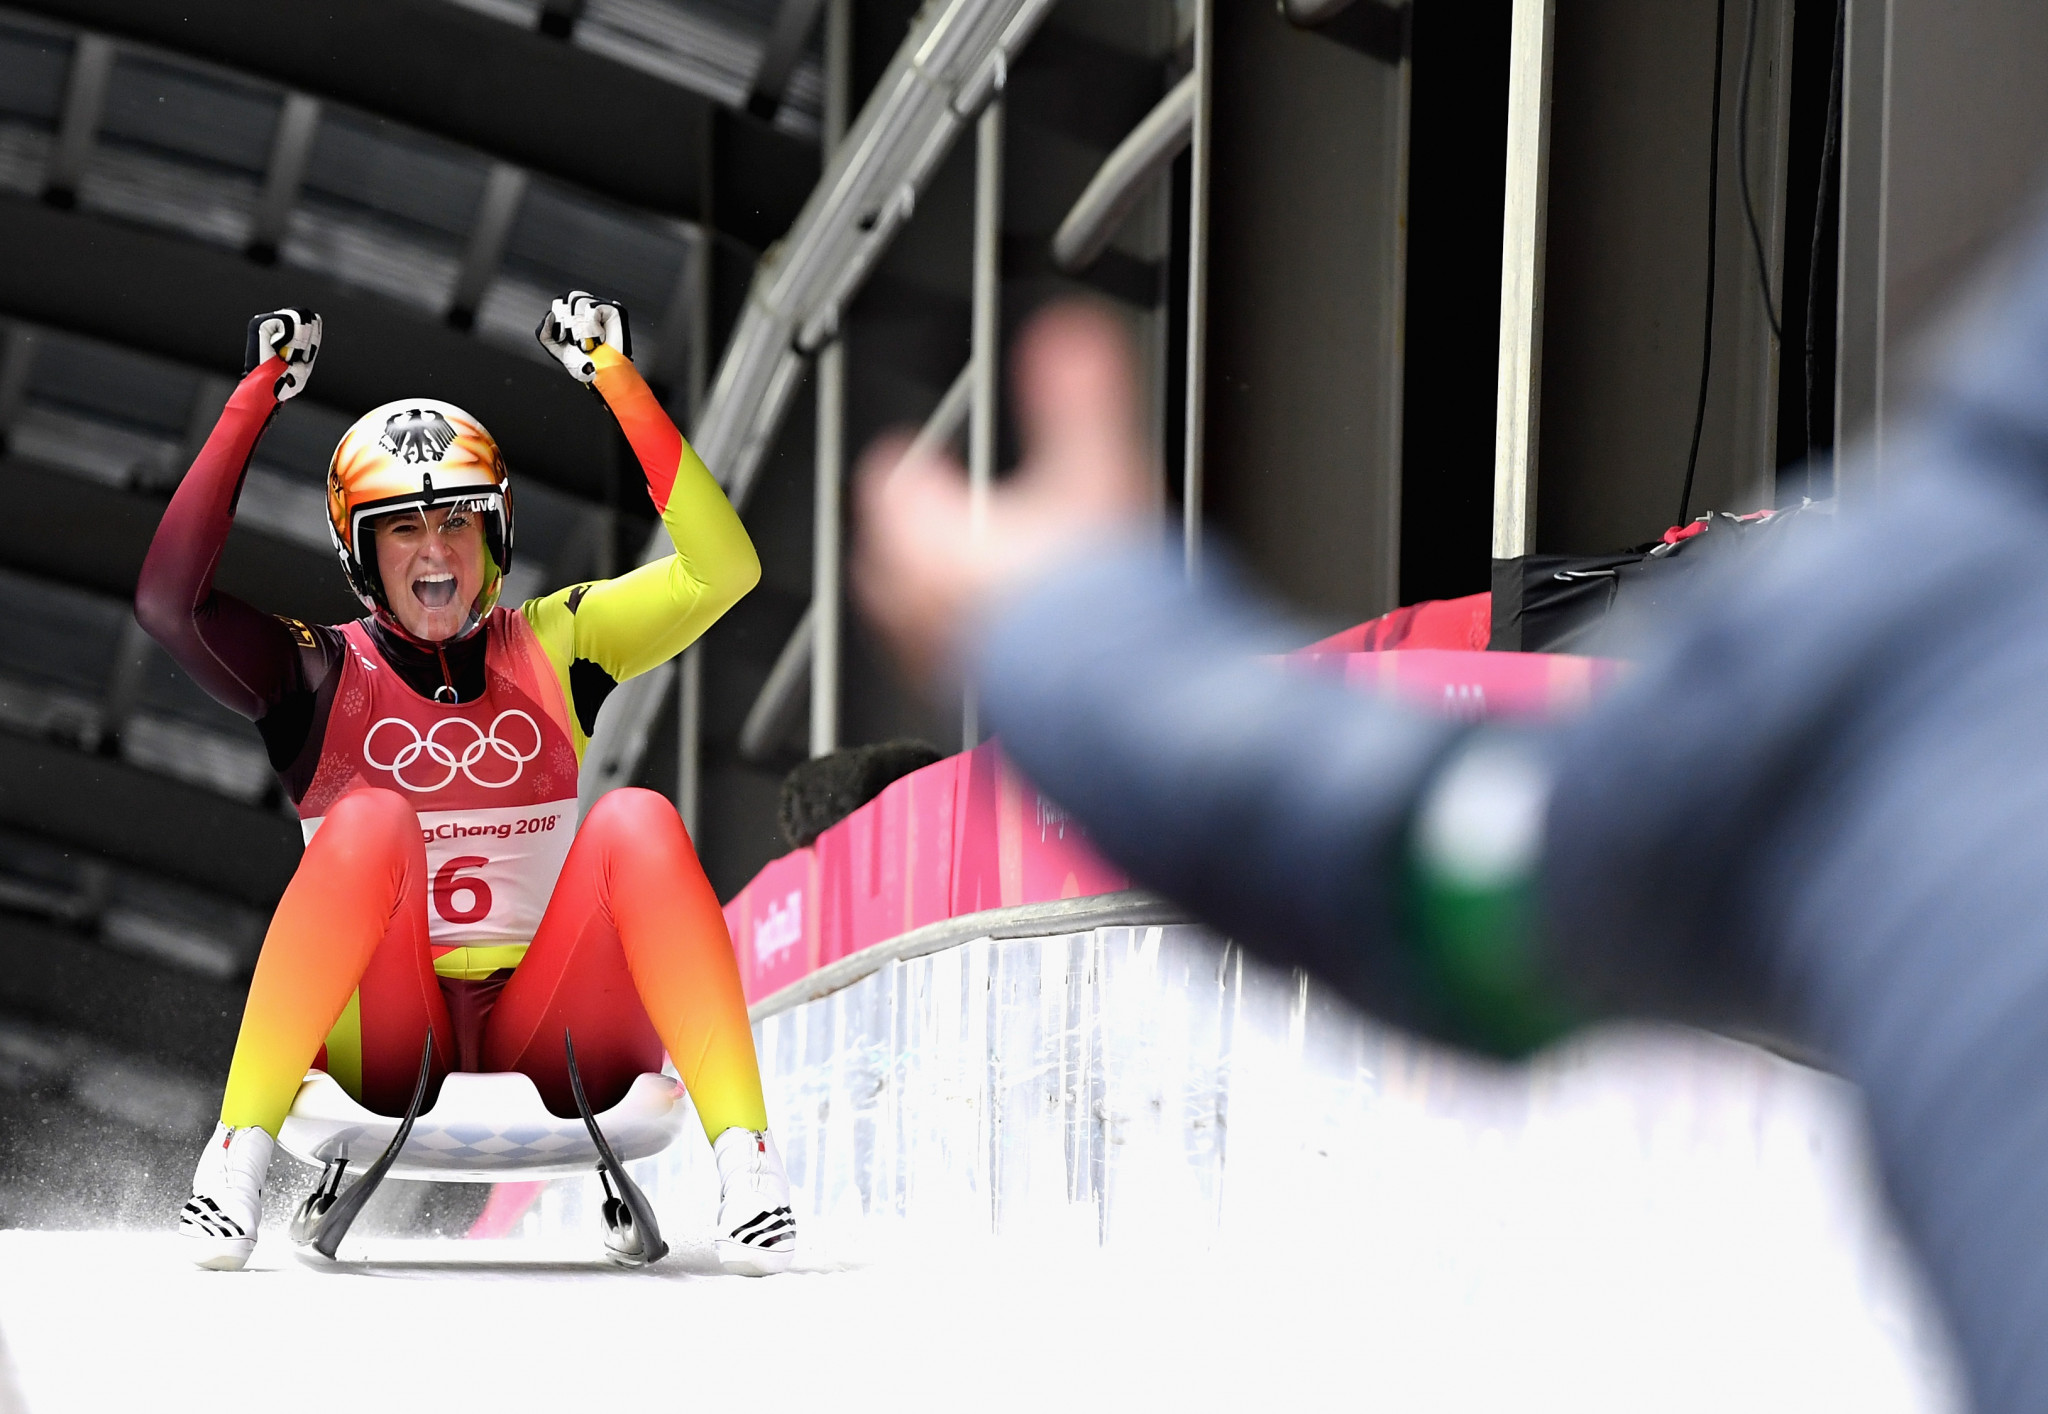 Geisenberger holds nerve to successfully defend Olympic luge crown